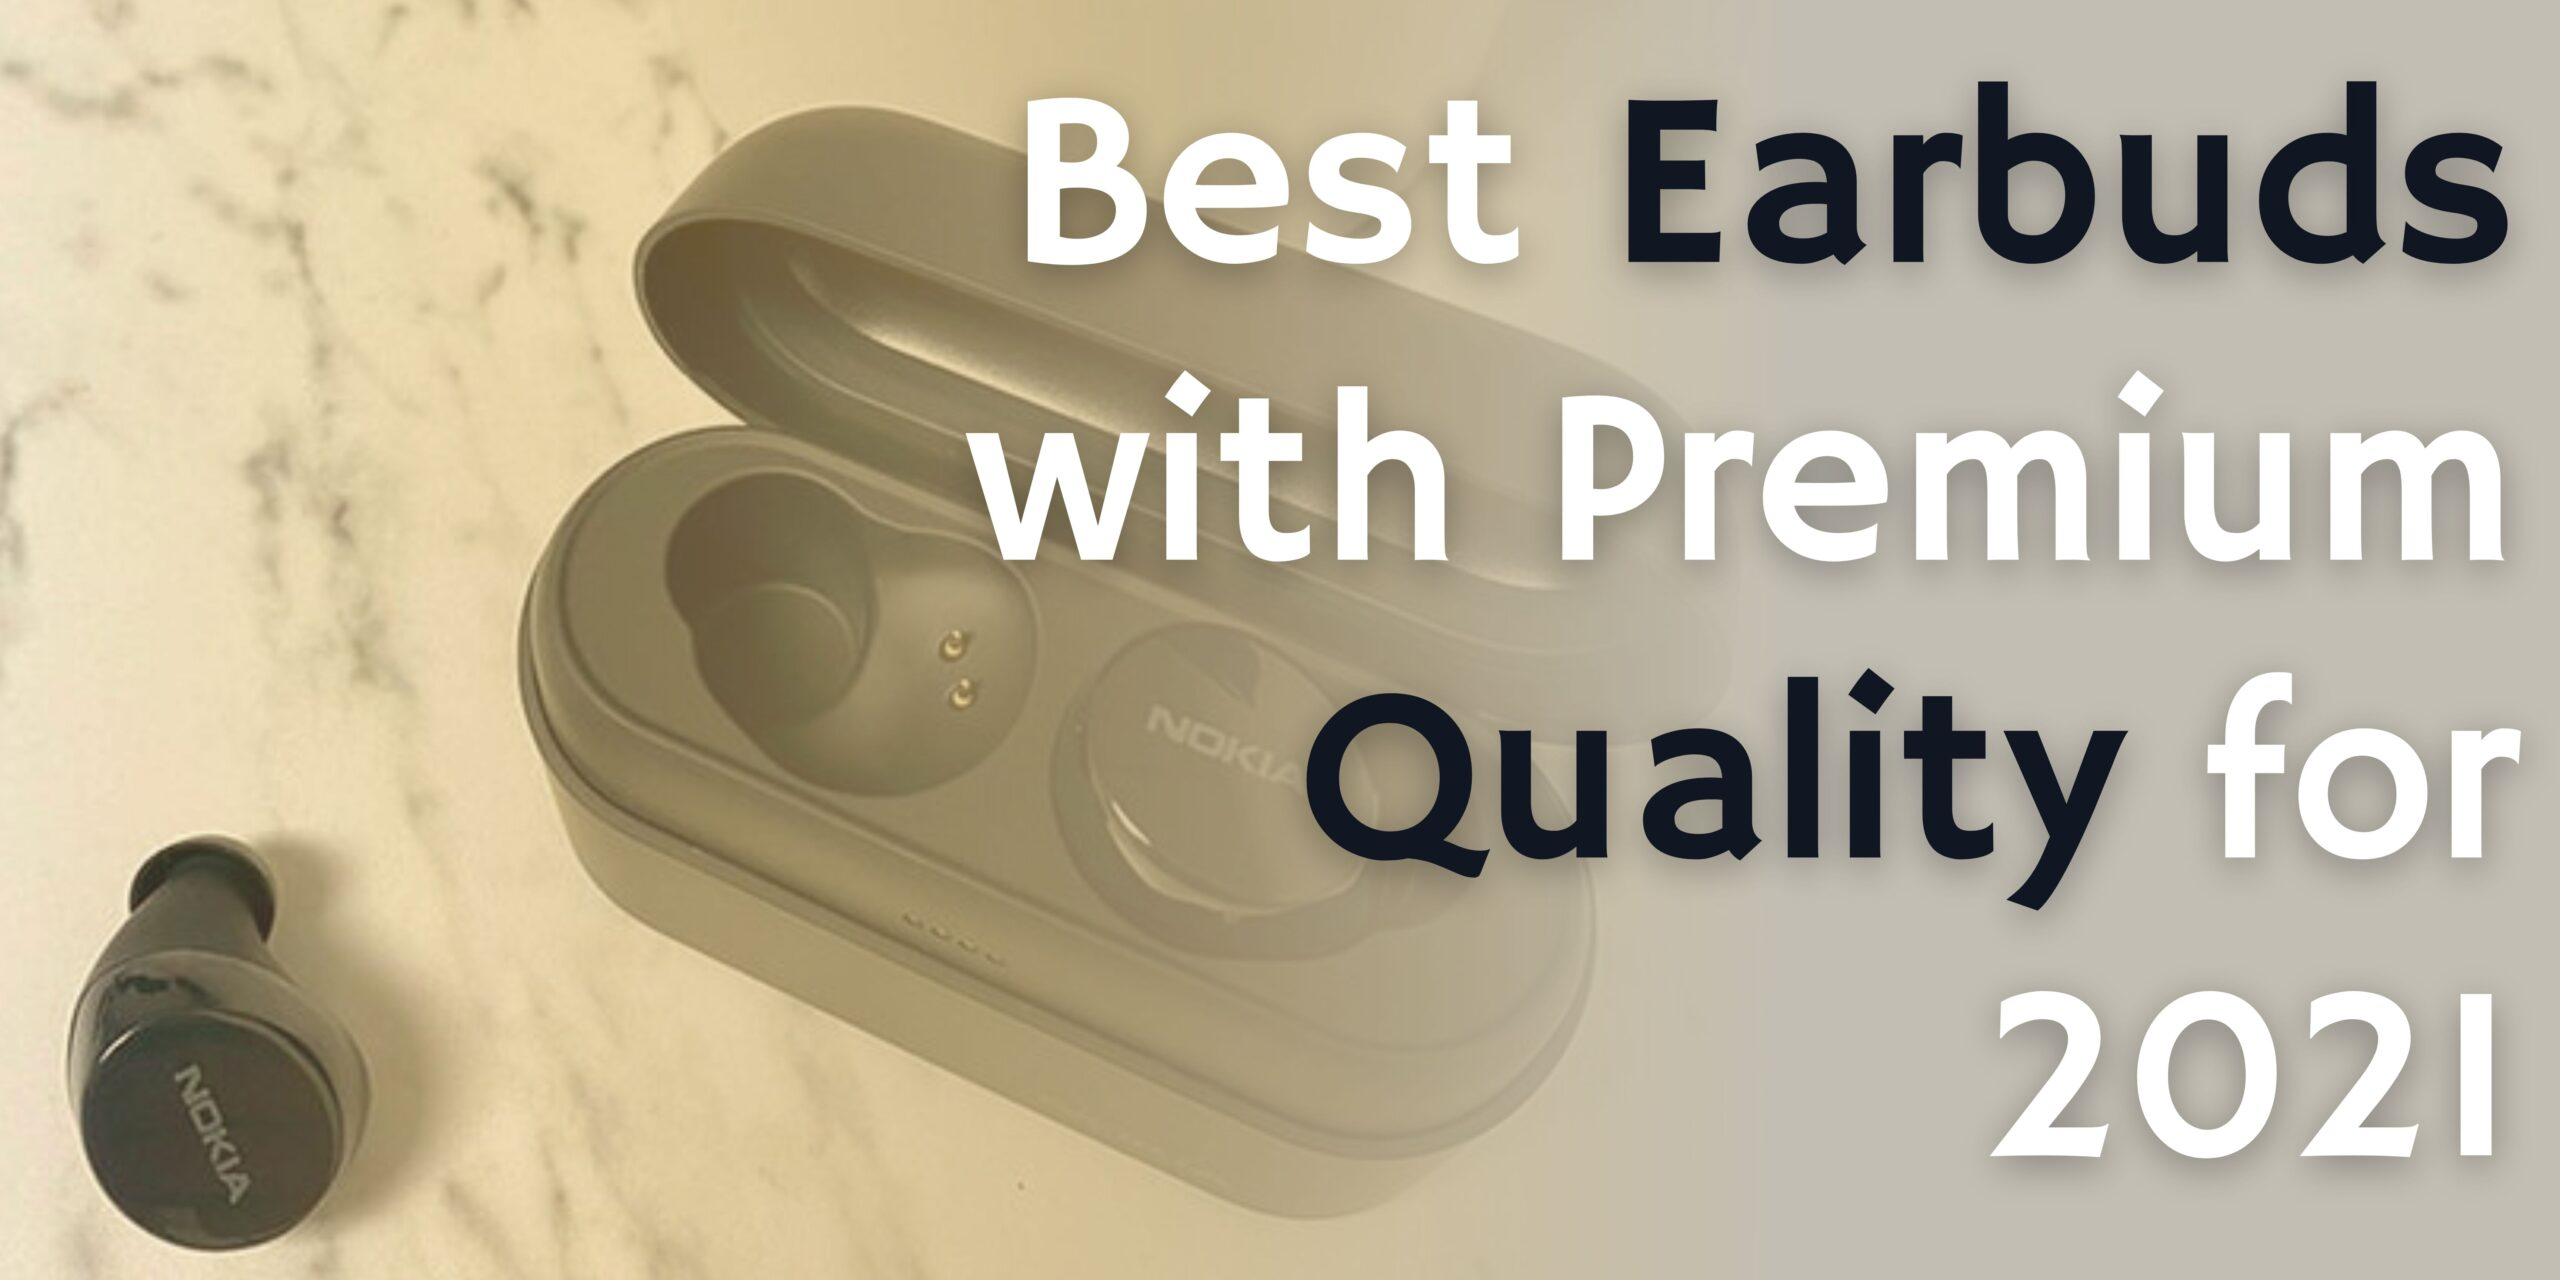 Best Earbuds with Premium Quality for 2021